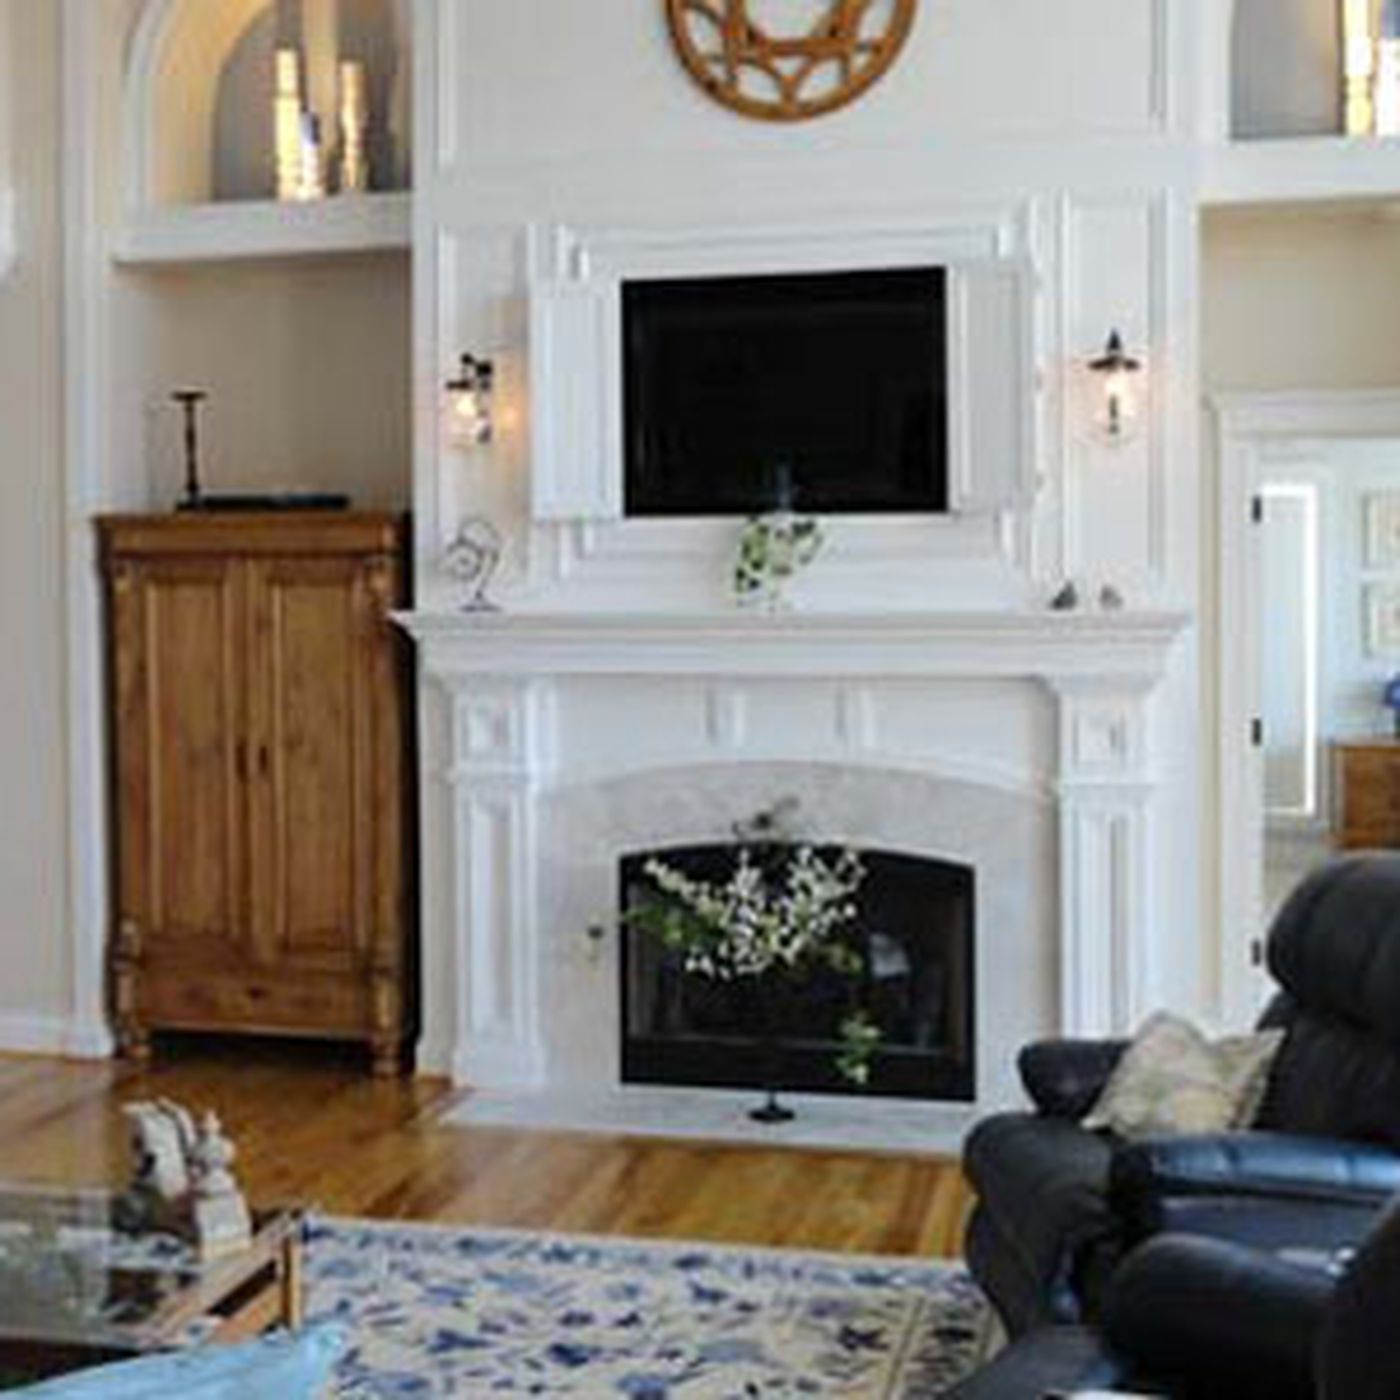 Beehive Fireplace Makeover Unique Best Fireplace before and afters 2013 This Old House